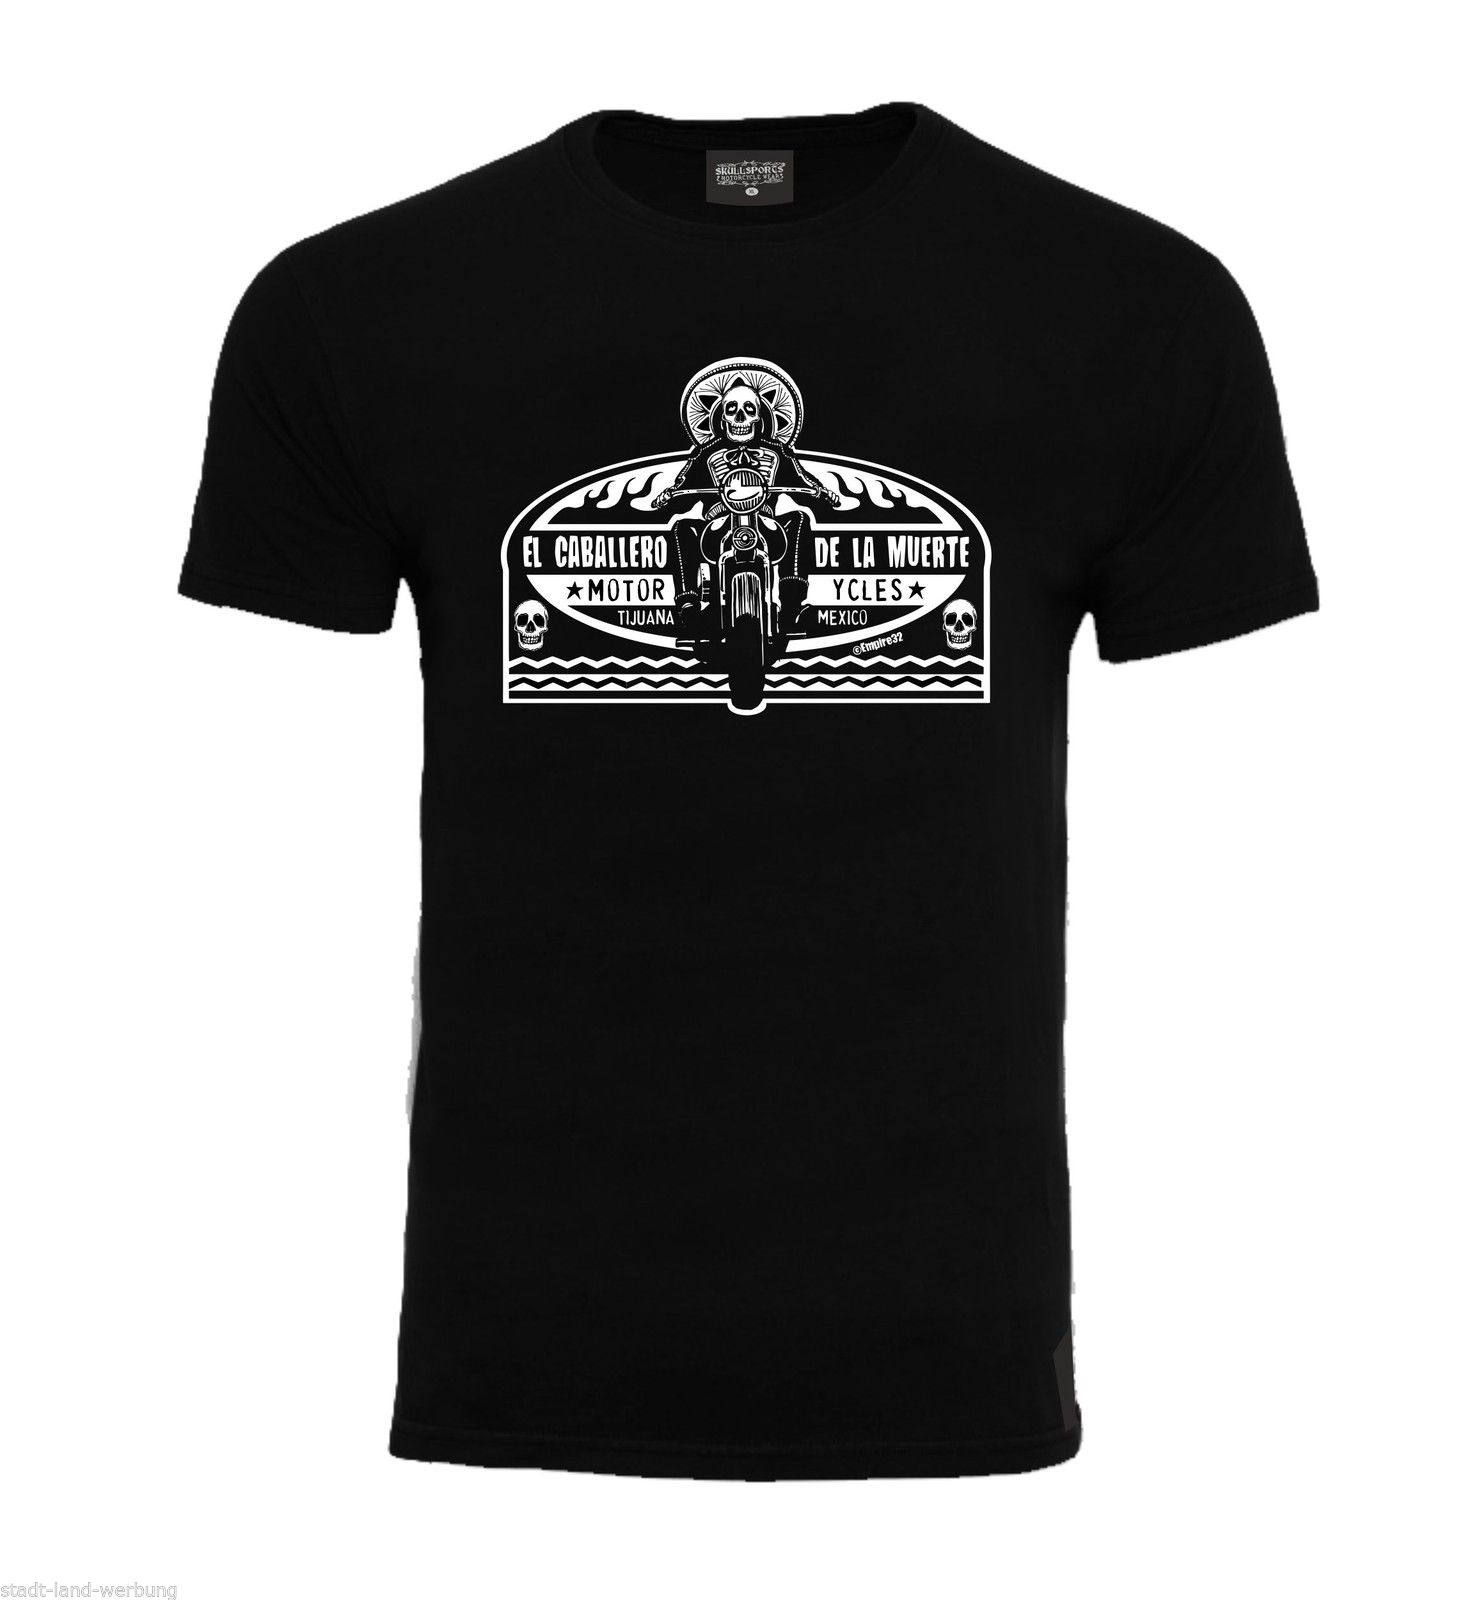 Newest 2019 Fashion Sleeves Cotton <font><b>T</b></font>-<font><b>Shirt</b></font> Skull sports <font><b>T</b></font>-<font><b>Shirt</b></font> The Rockabilly Knight Biker Bobber <font><b>V8</b></font> <font><b>T</b></font> <font><b>Shirt</b></font> image